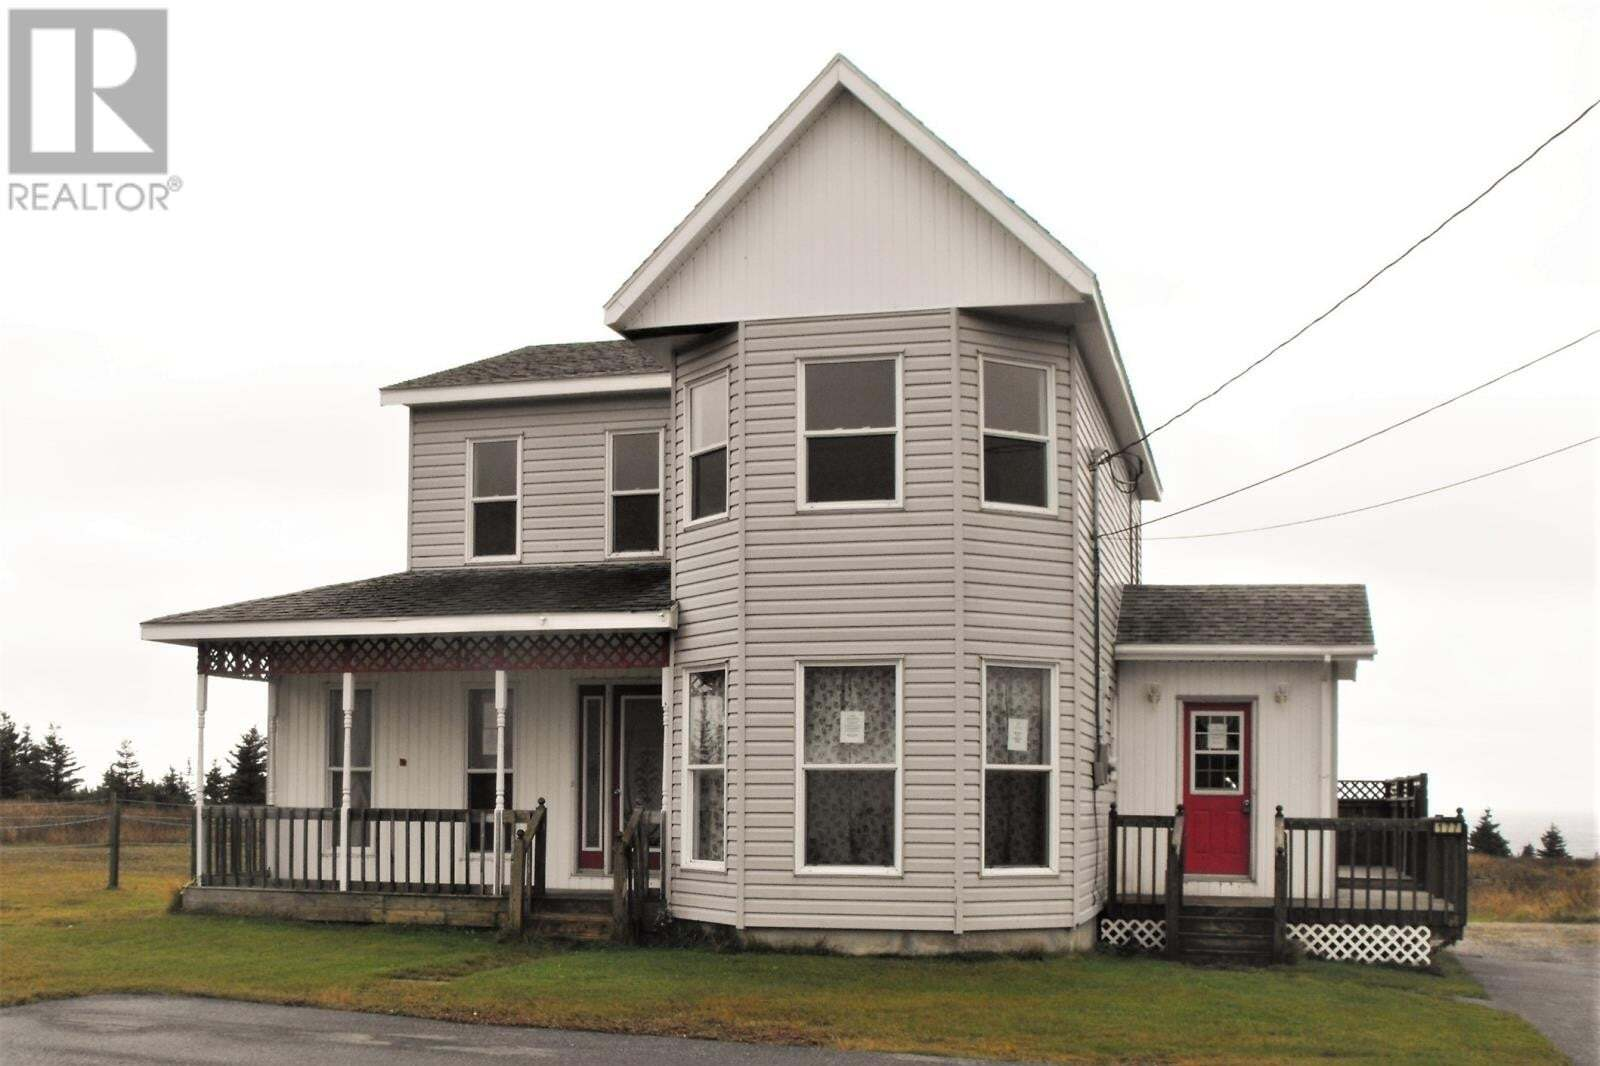 House for sale at 177 Main Rd Ship Cove Newfoundland - MLS: 1212291